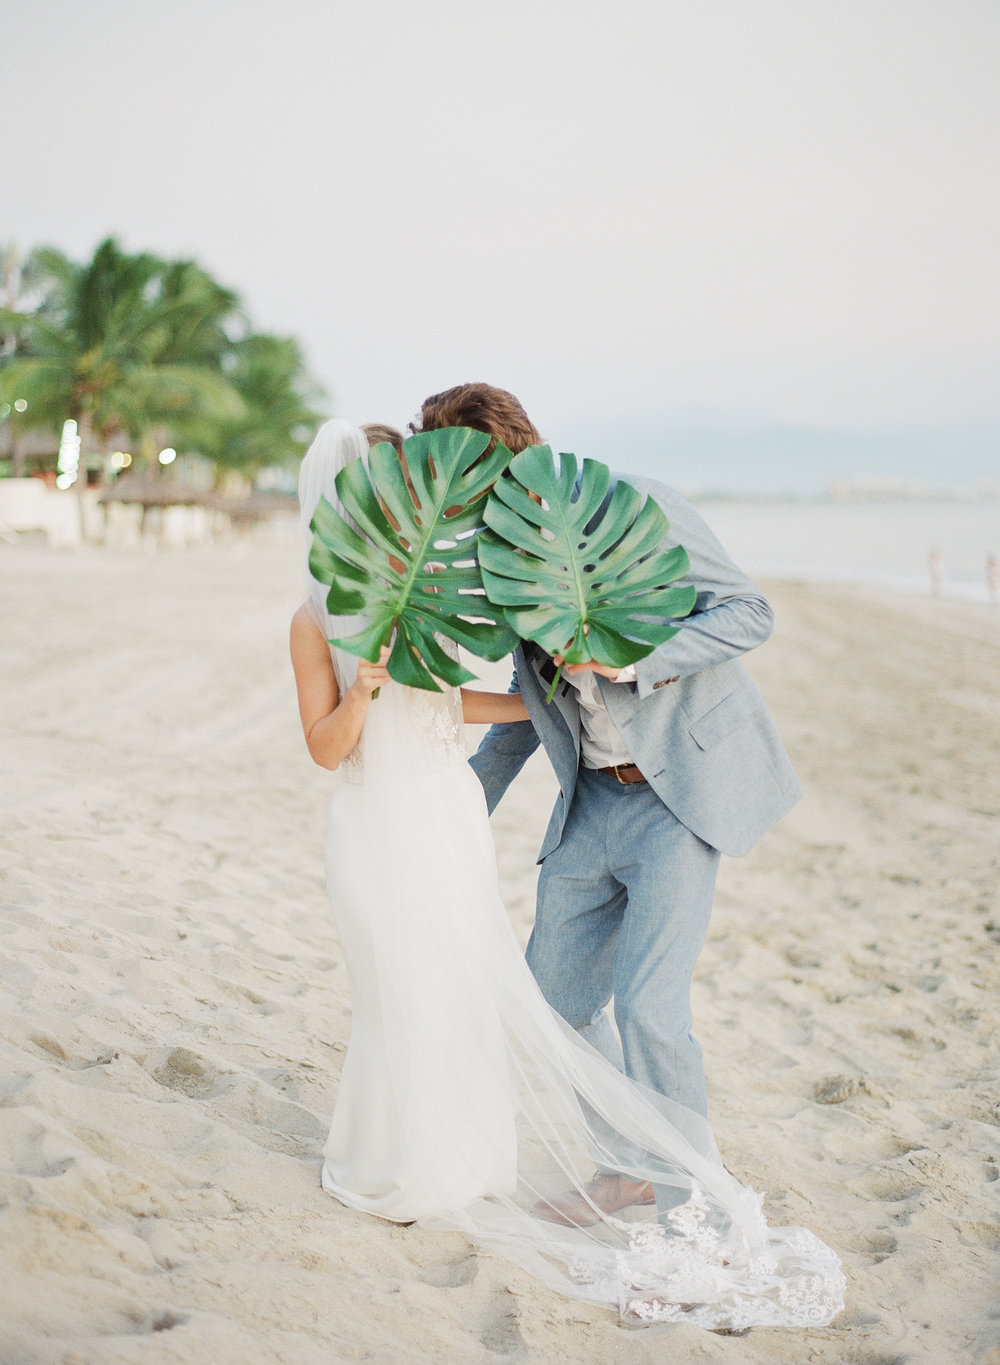 DANA + DAVID - SAYULITA, MEXICO